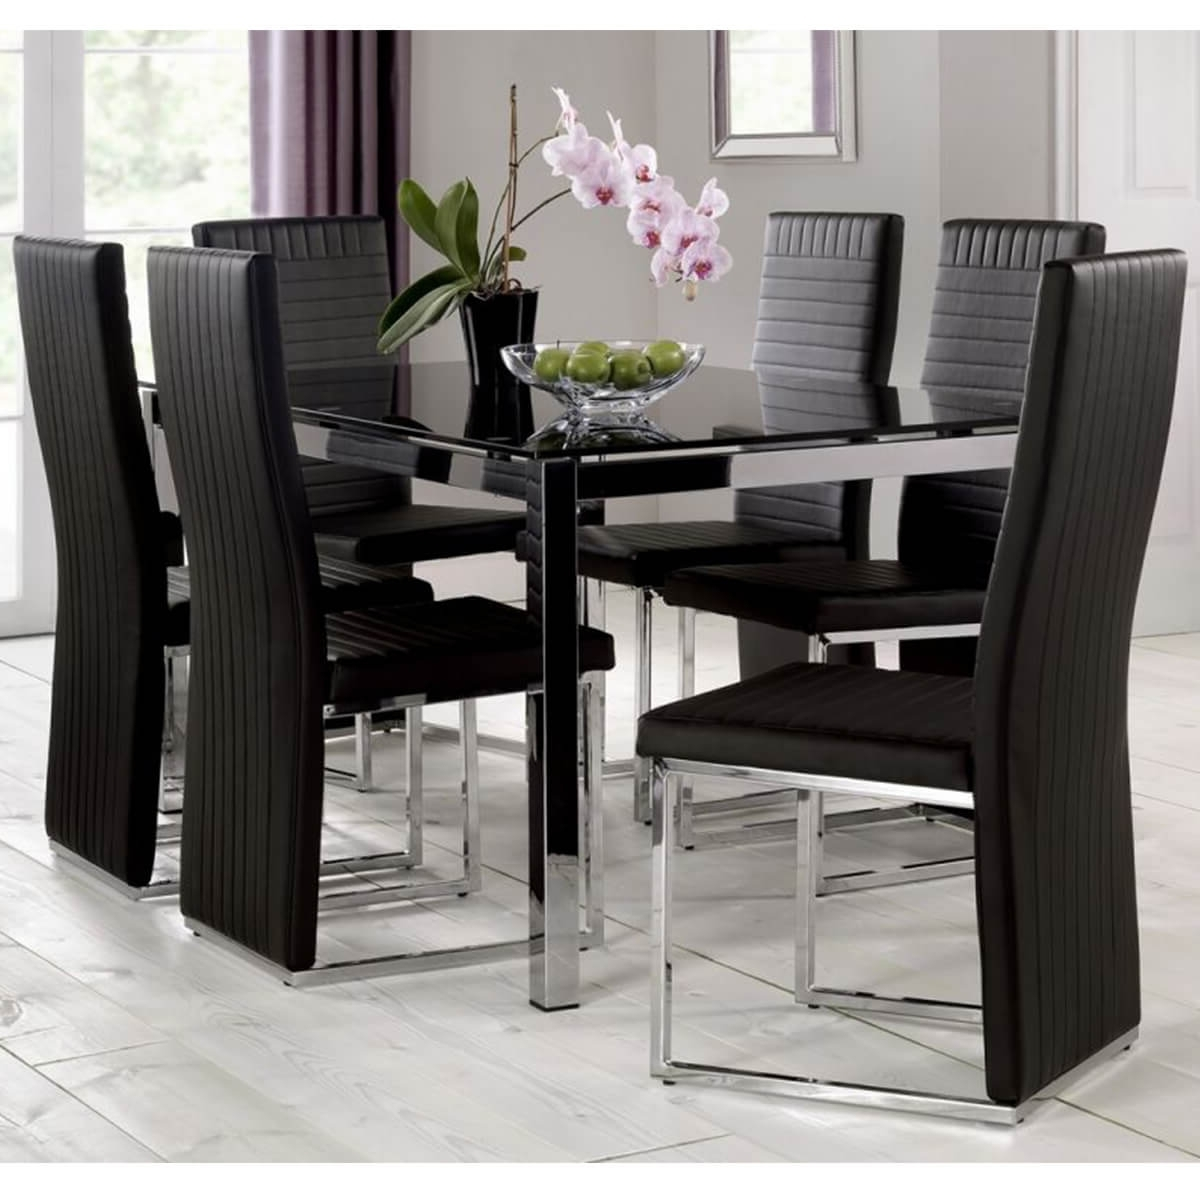 Tempo Black Dining Table With Black Chairs (View 19 of 25)